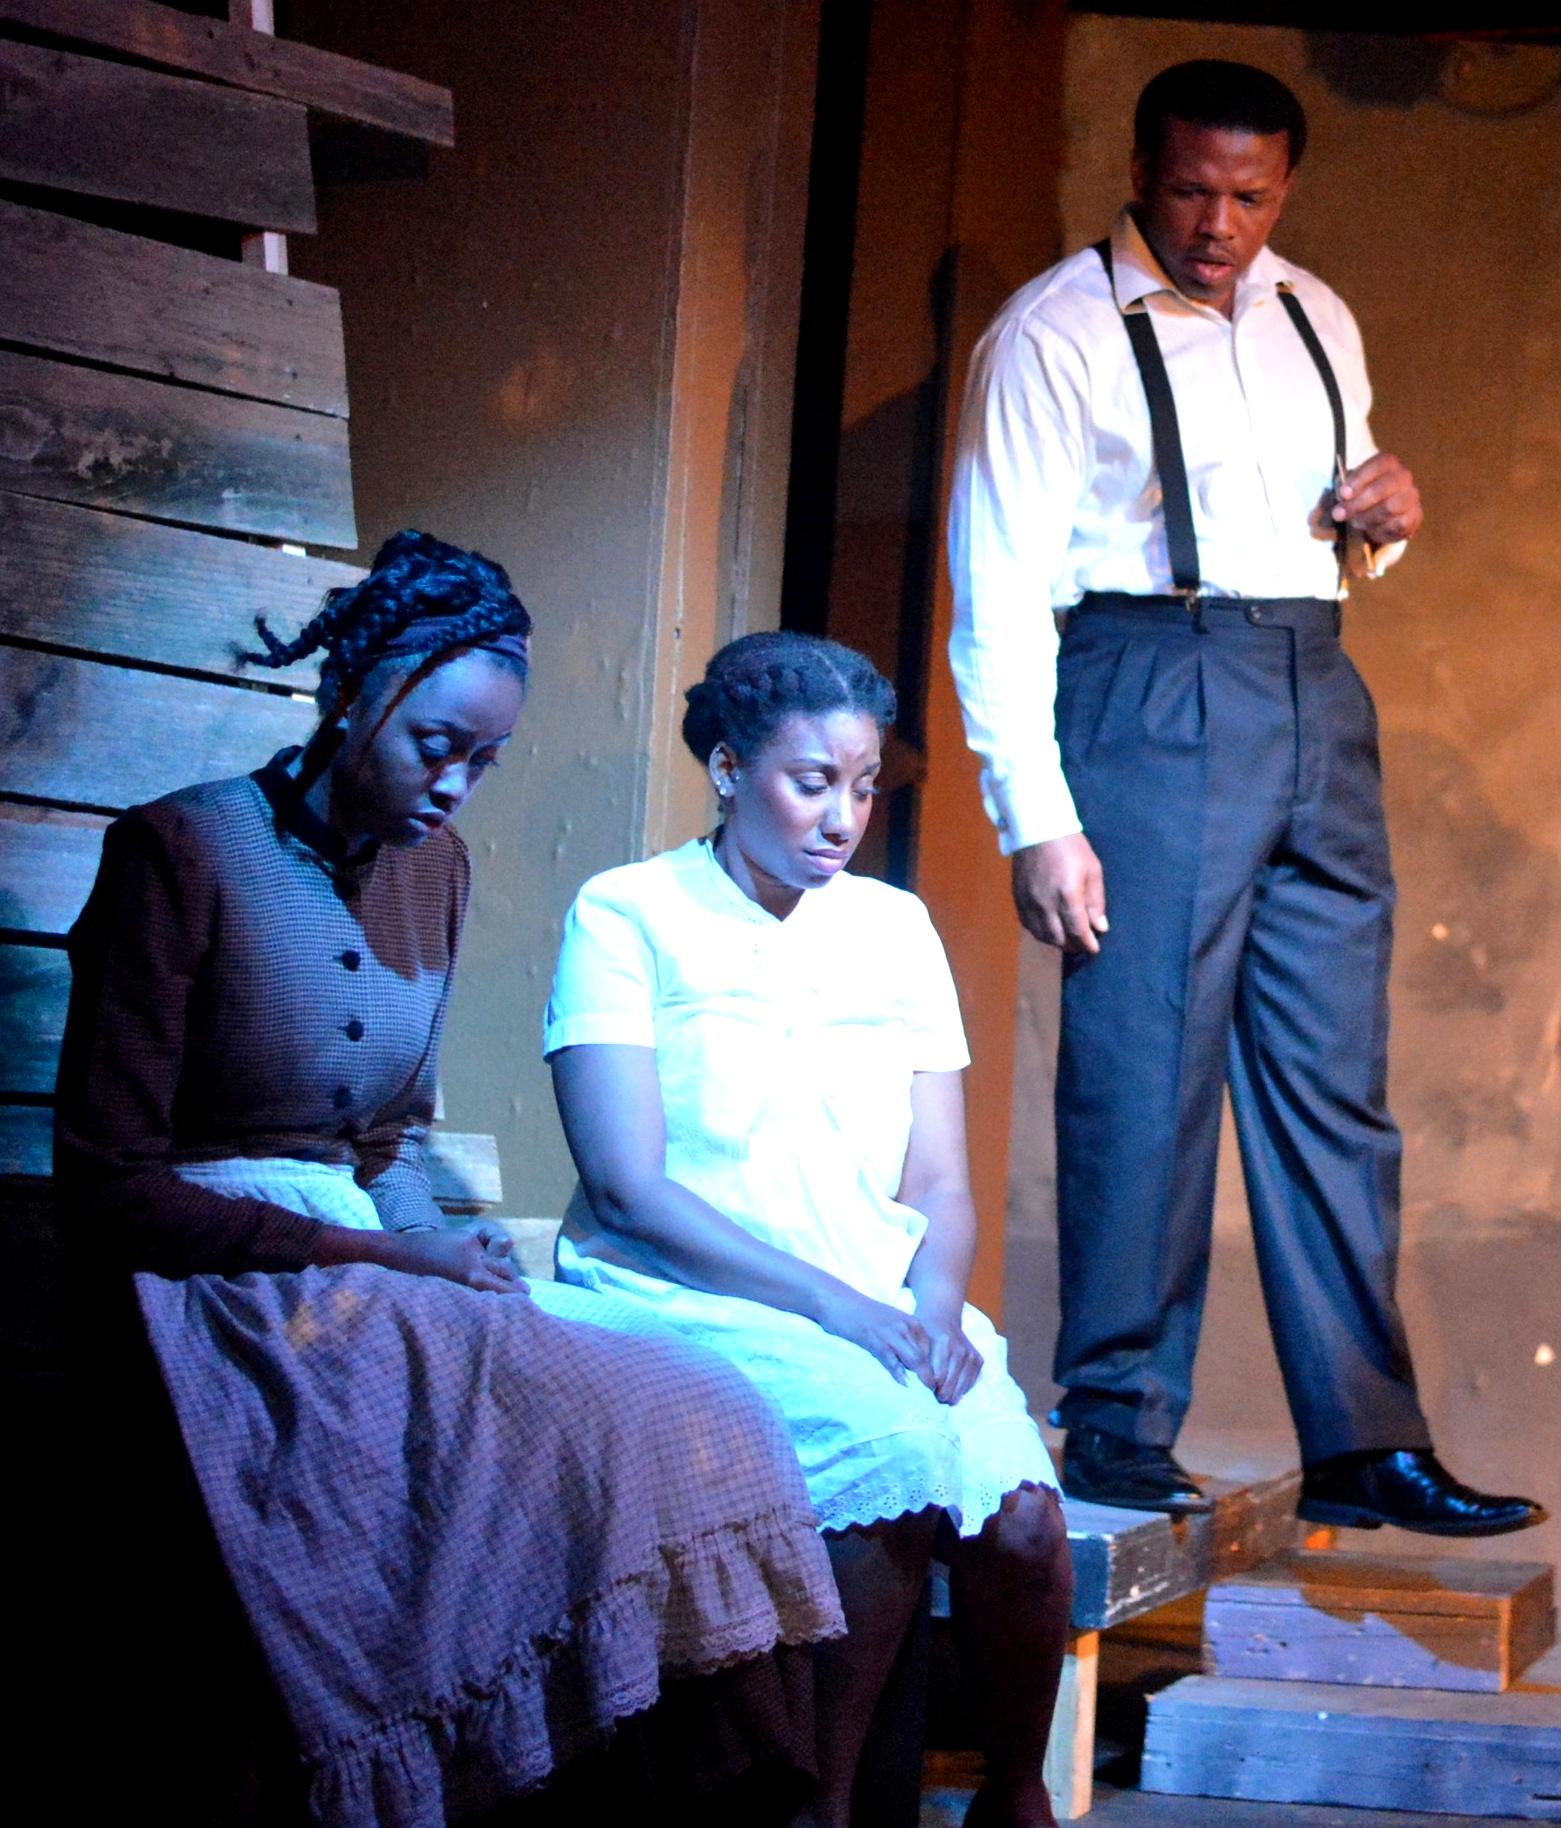 Asia Nelson, Giselle Nakhid and Damien A. Moses as Mister